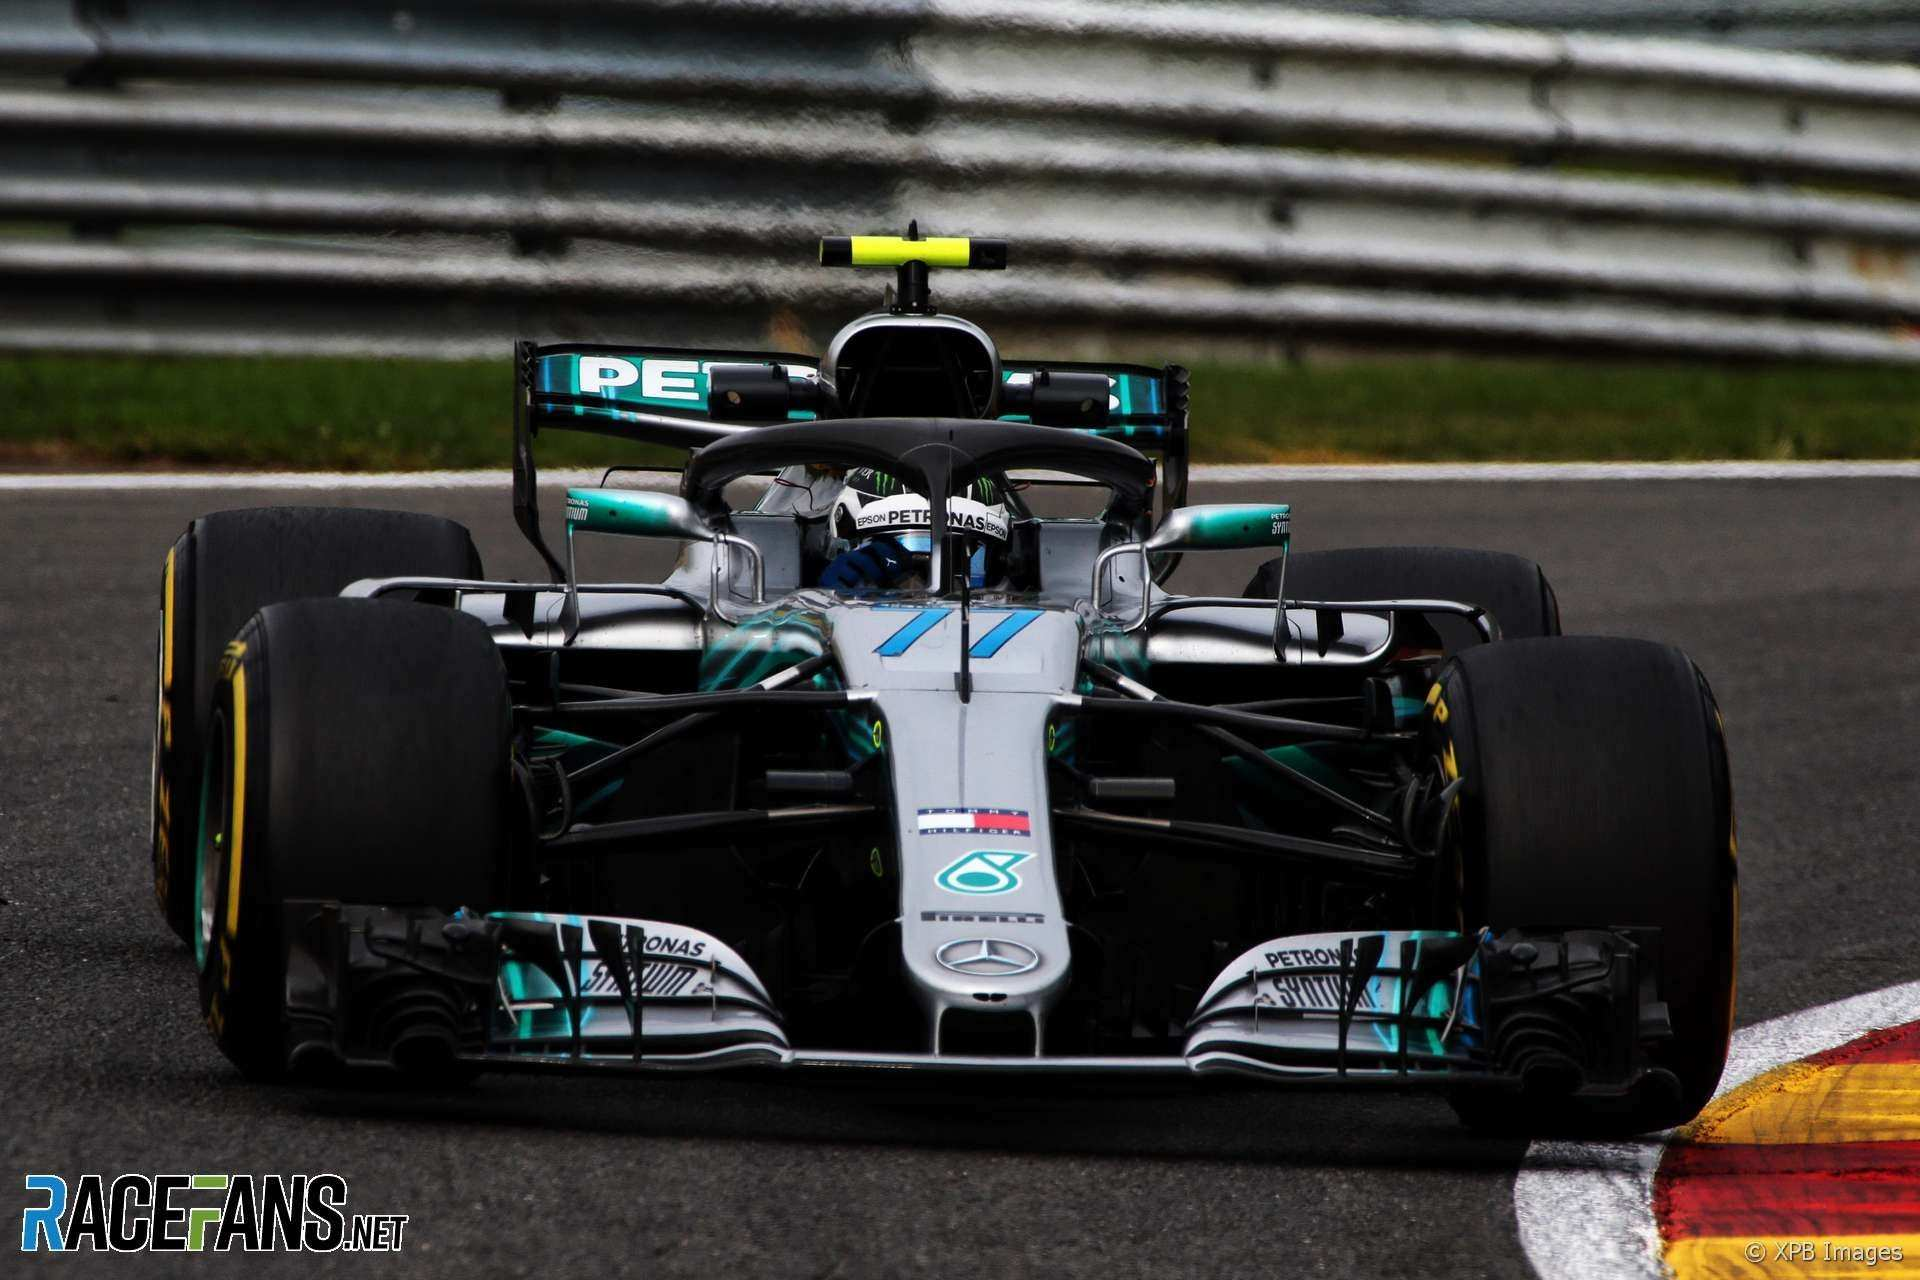 63 New New Bottas Mercedes 2019 Review And Release Date Performance for New Bottas Mercedes 2019 Review And Release Date